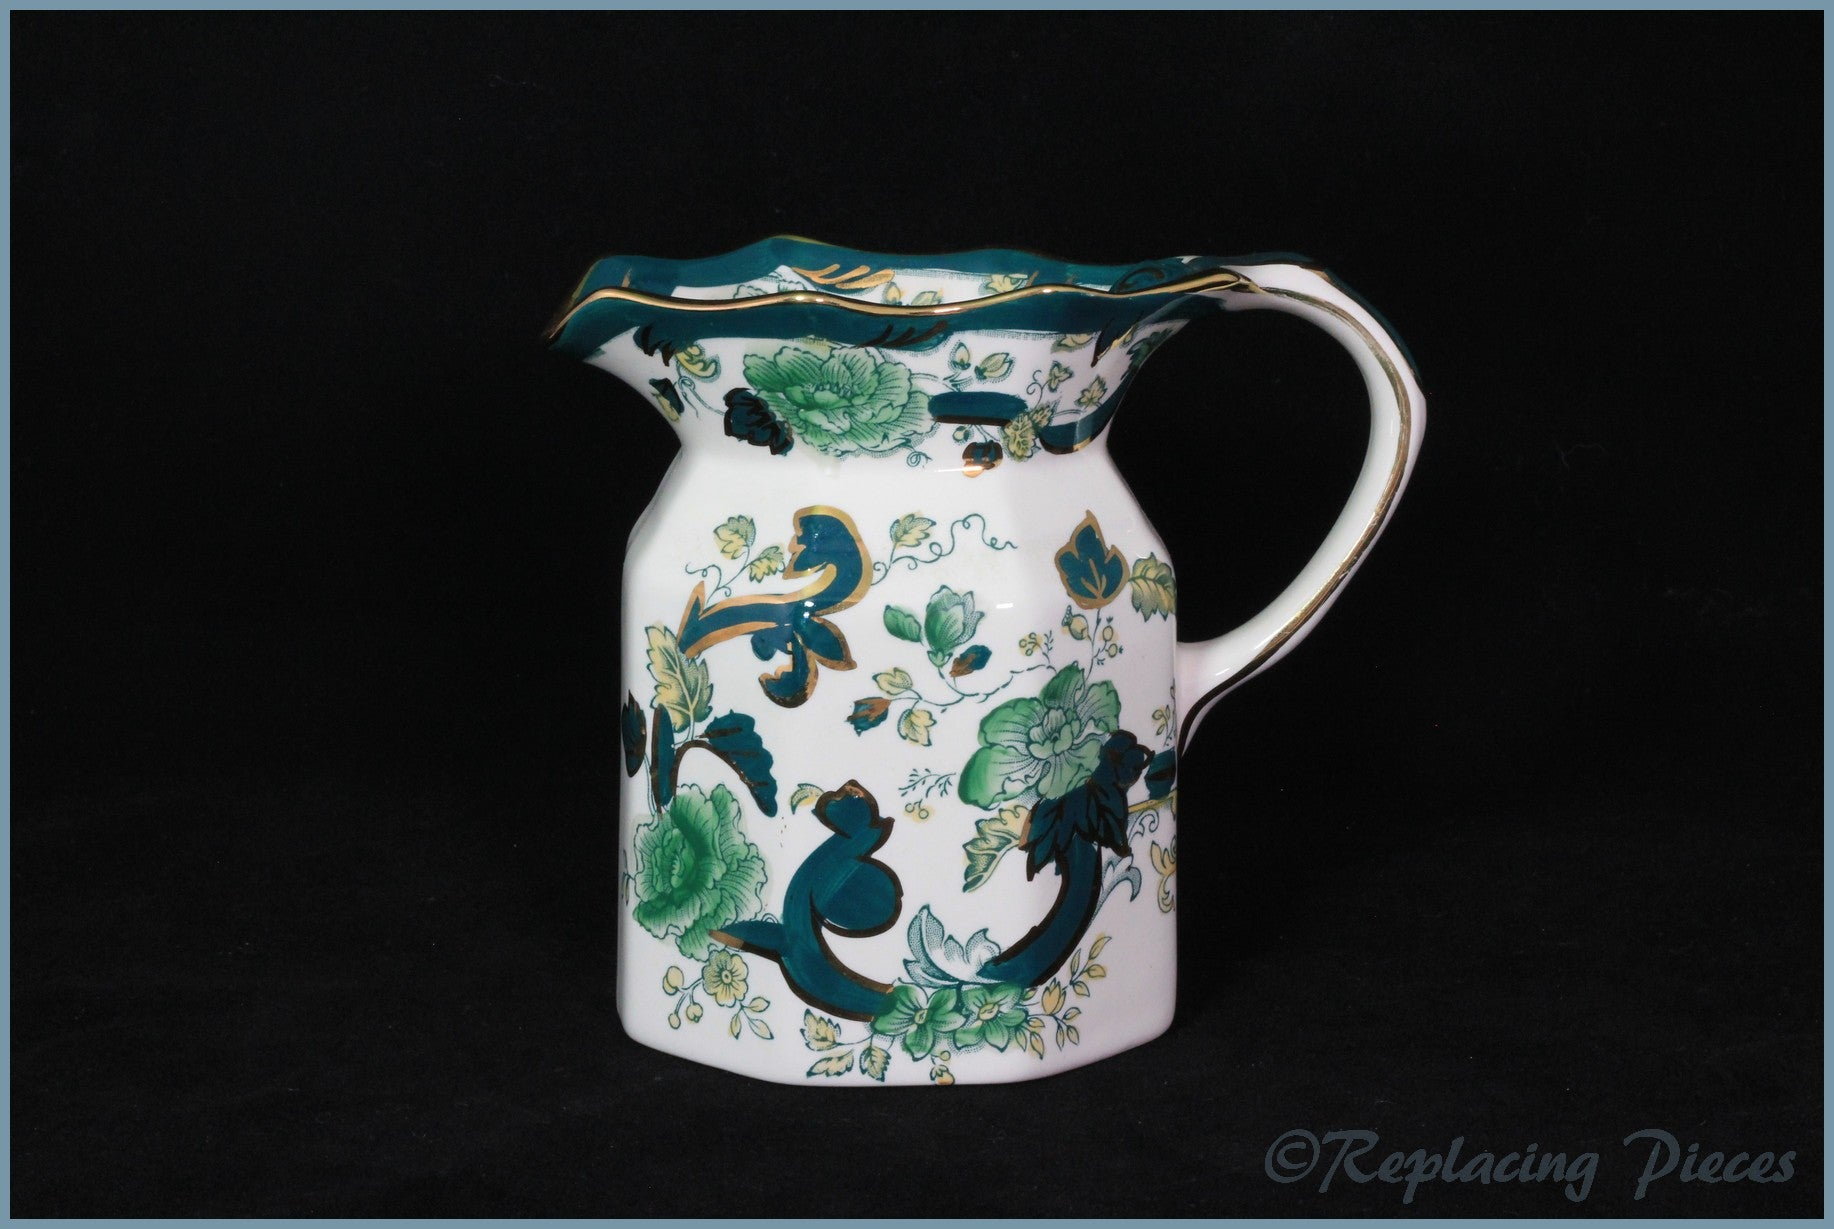 Masons - Chartreuse - Fenton Jug (medium)